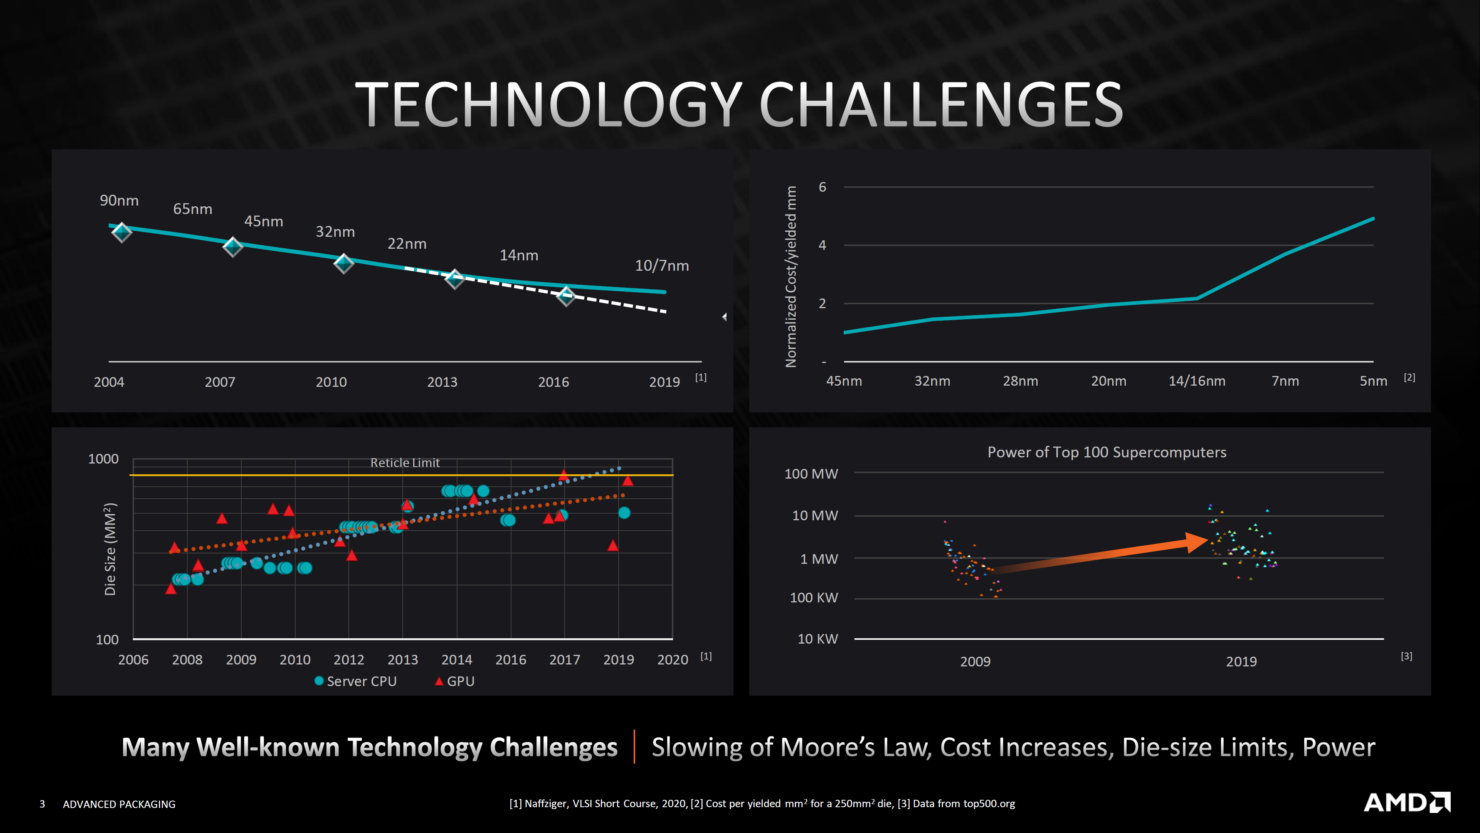 amd-advanced-3d-chiplet-packaging-3d-stacking-technologies-3d-v-cache-_2